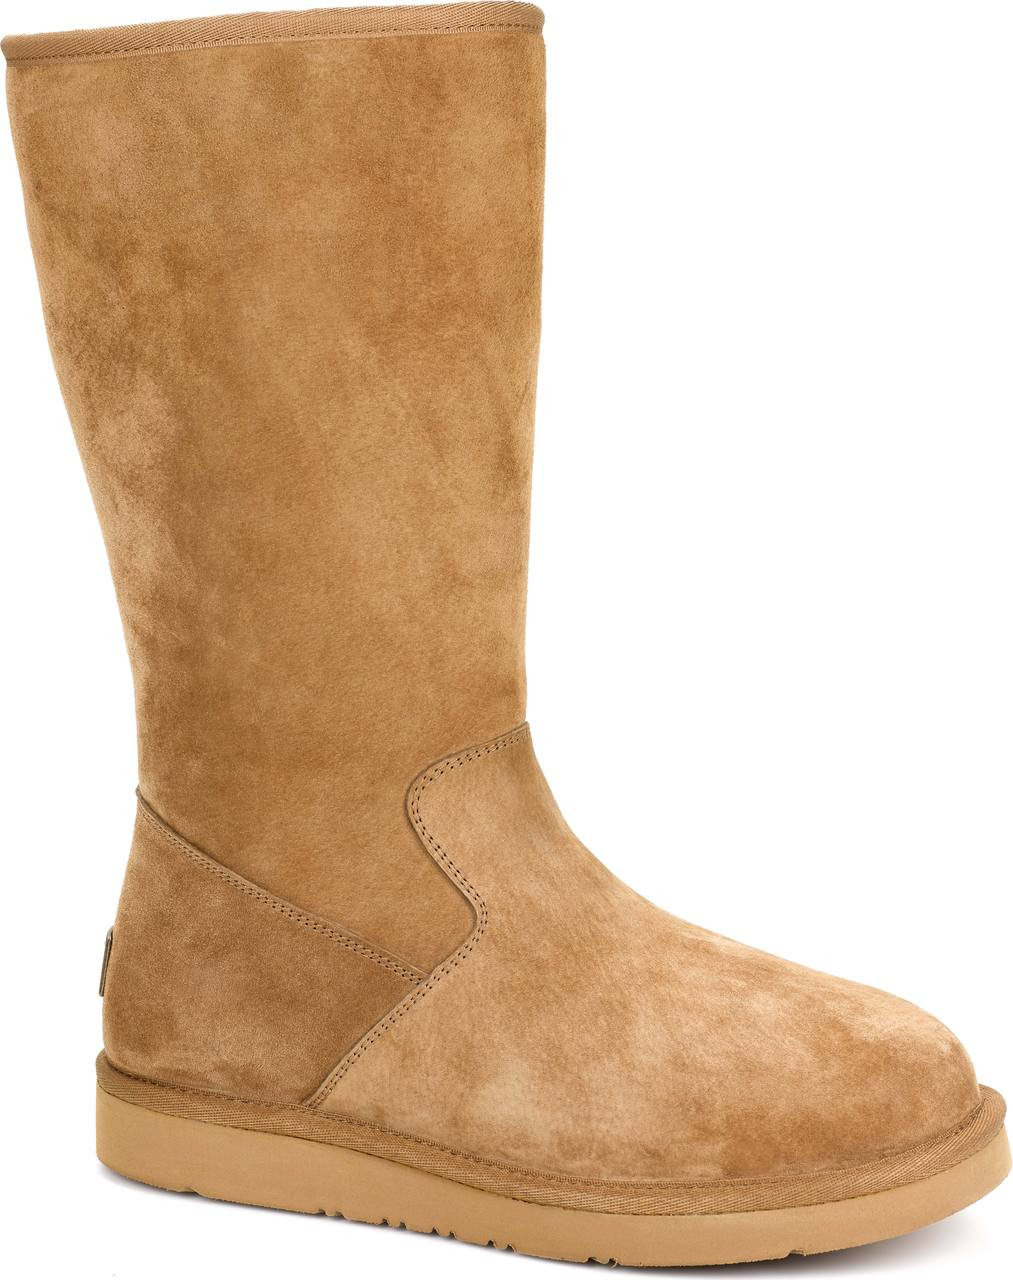 New Arrival Womens Casual Shoes - UGG Sumner Chestnut